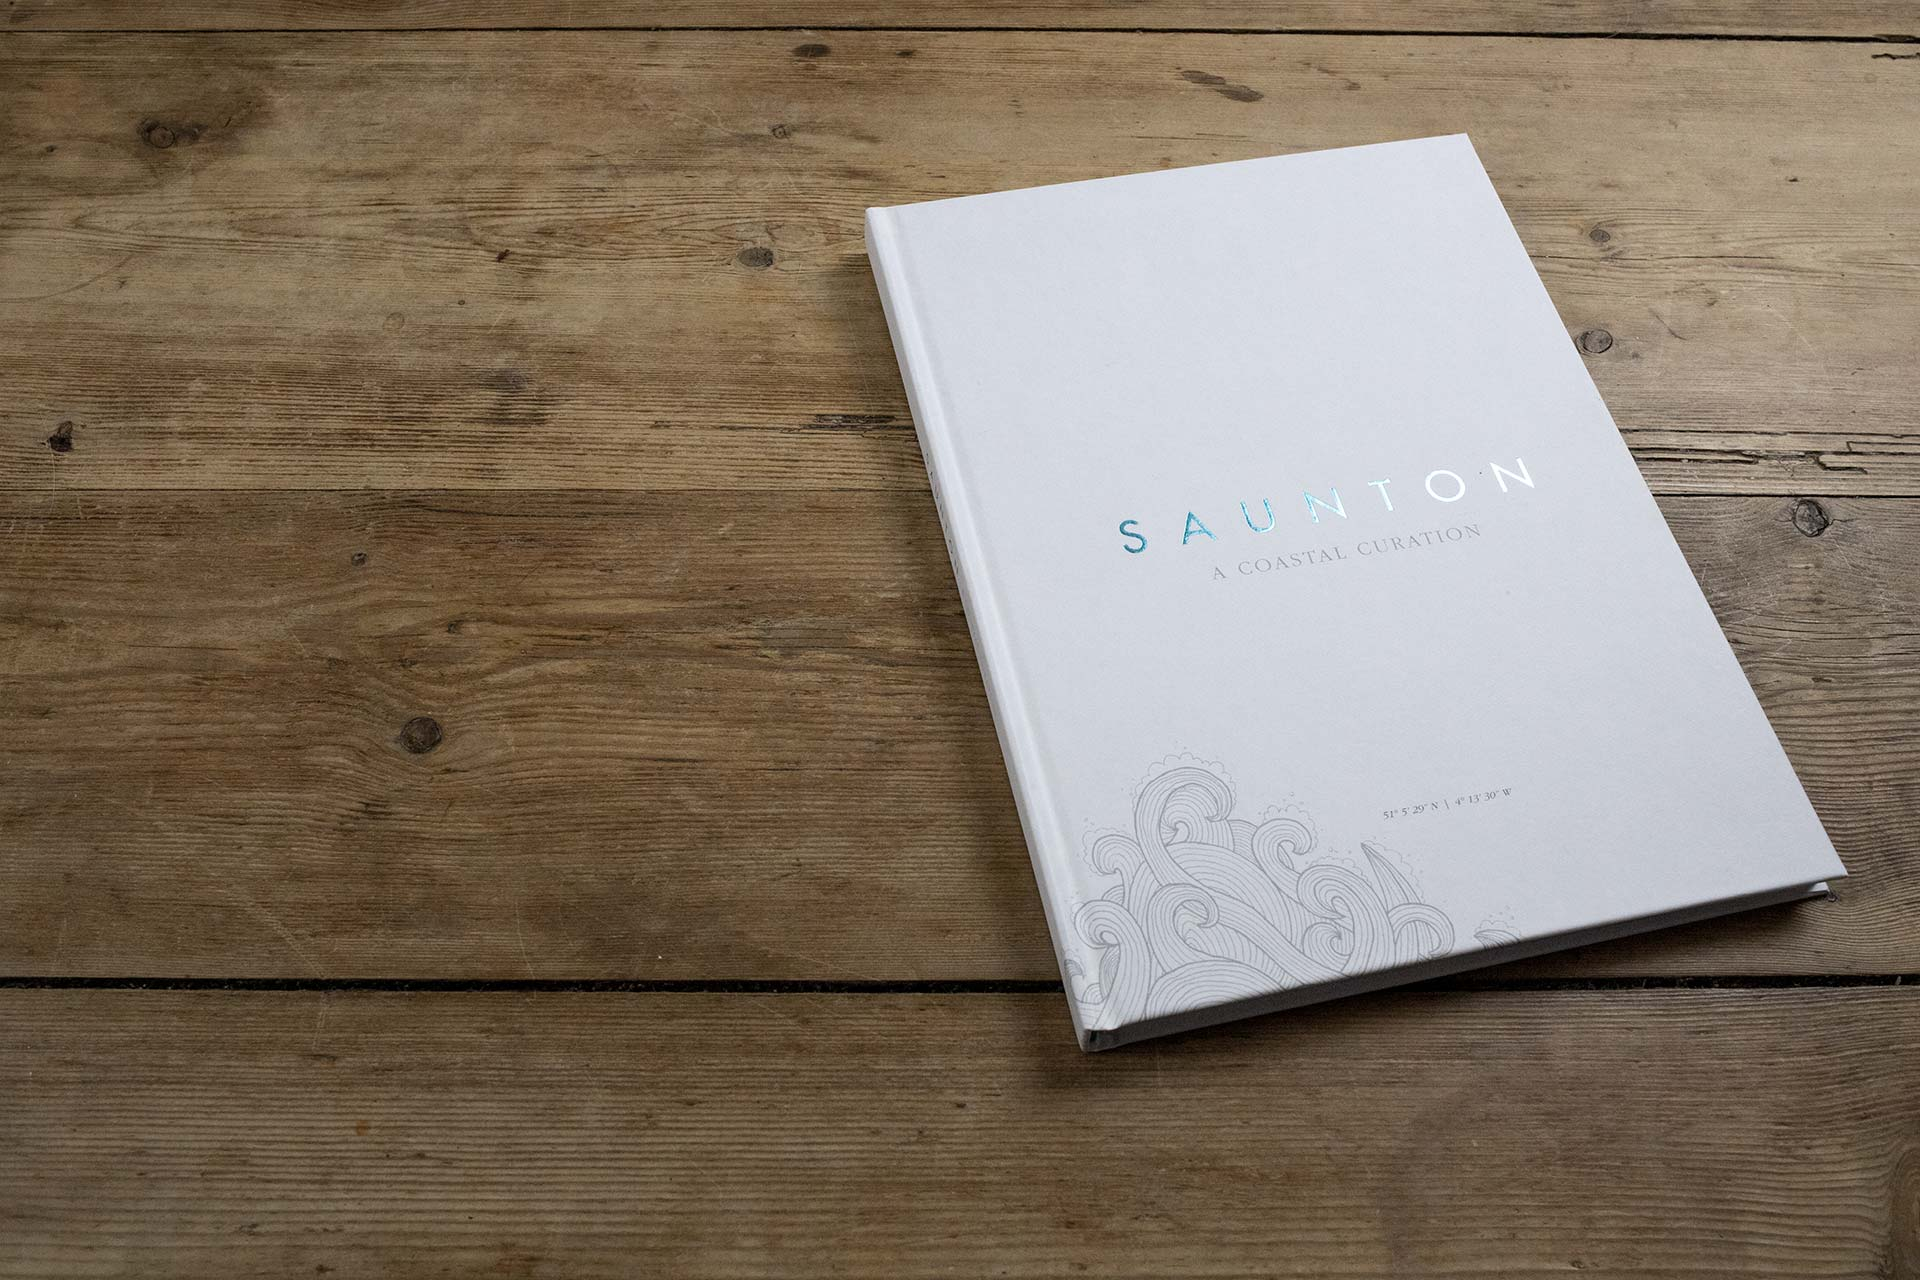 Saunton Sands Hotel book